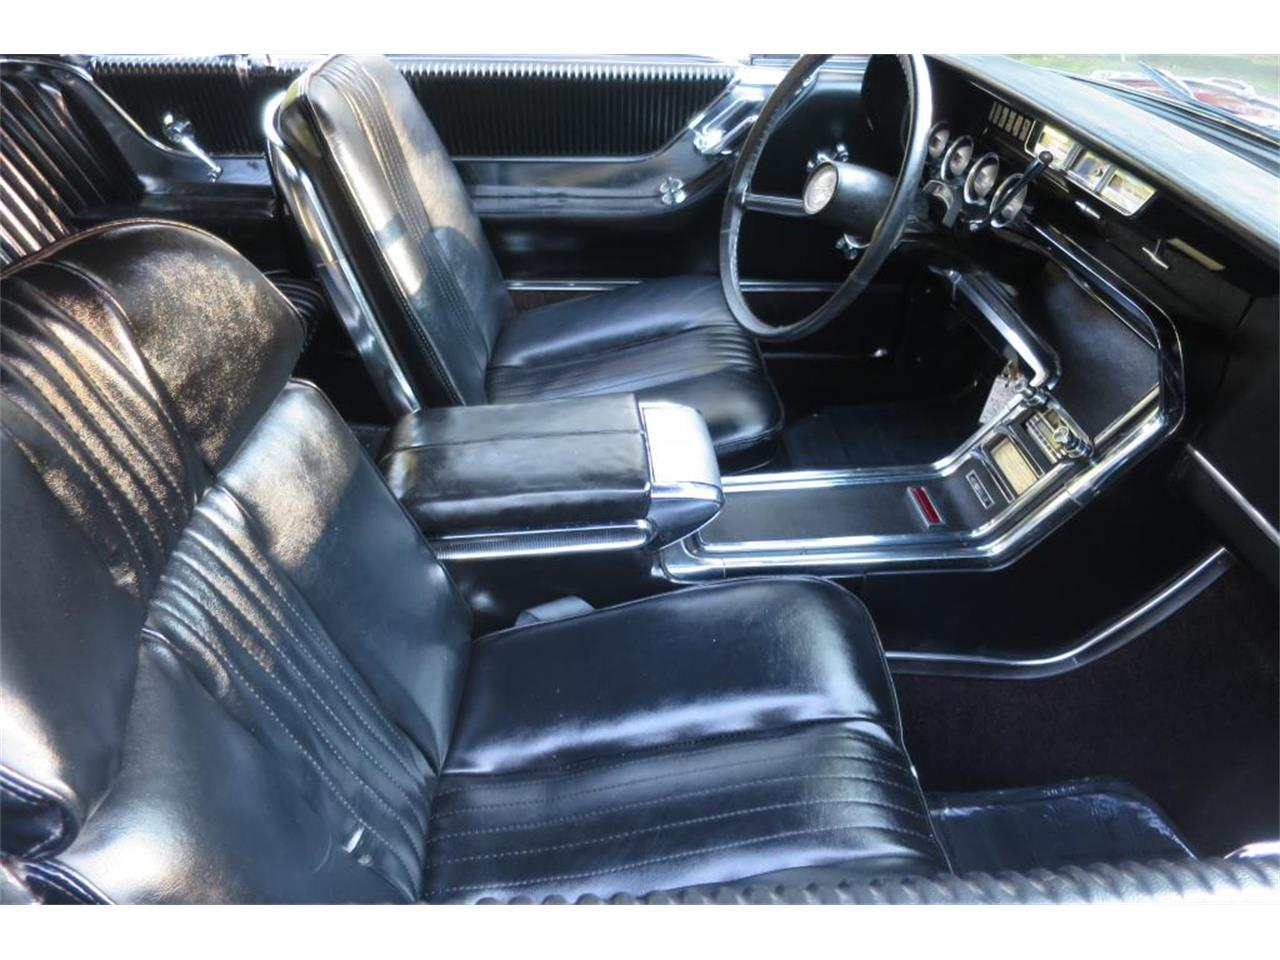 Large Picture of Classic '64 Ford Thunderbird located in Connecticut Auction Vehicle Offered by Napoli Classics - LHHL